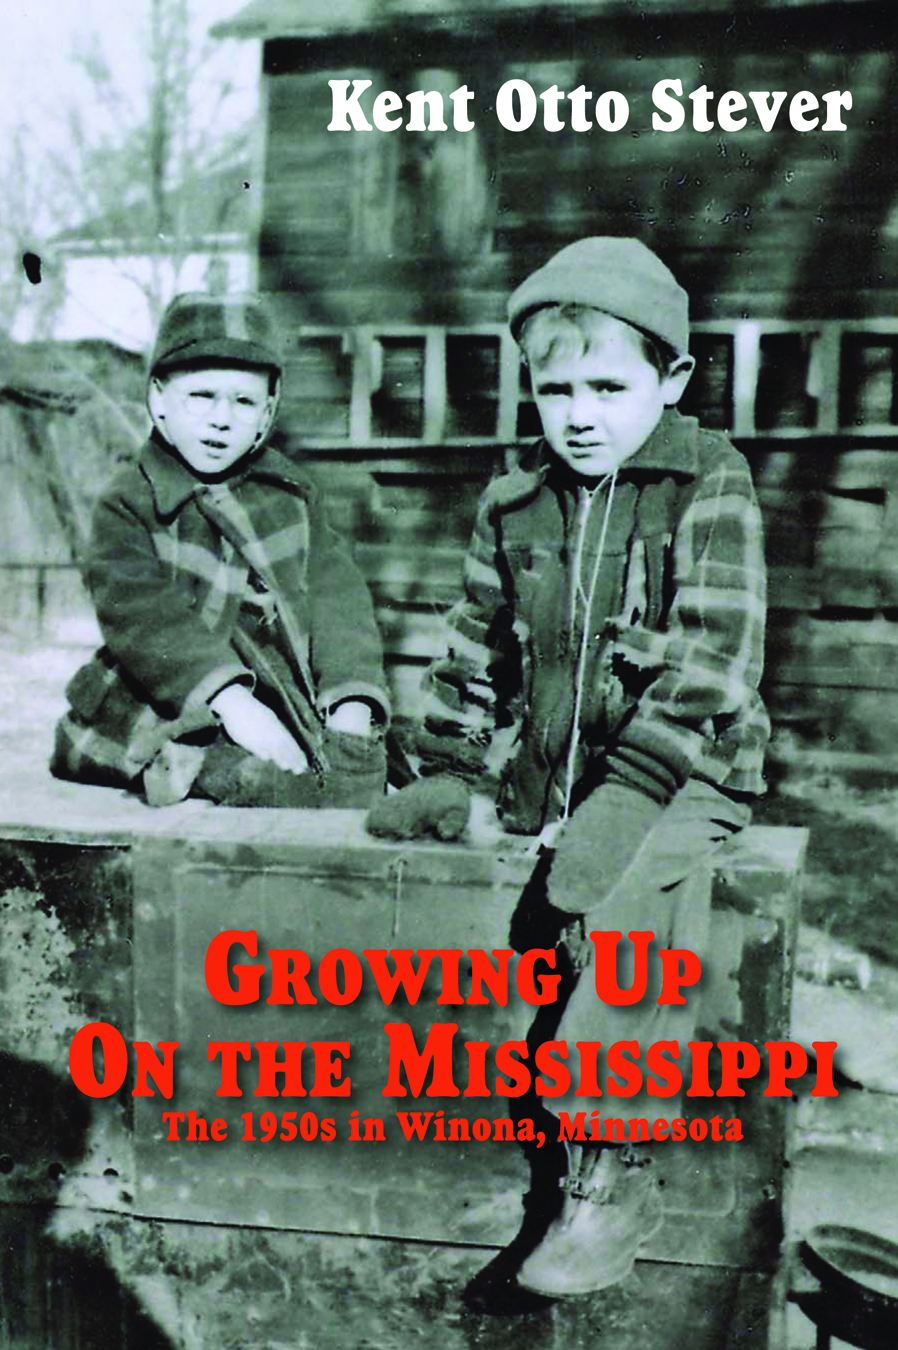 Growing Up On the Mississippi